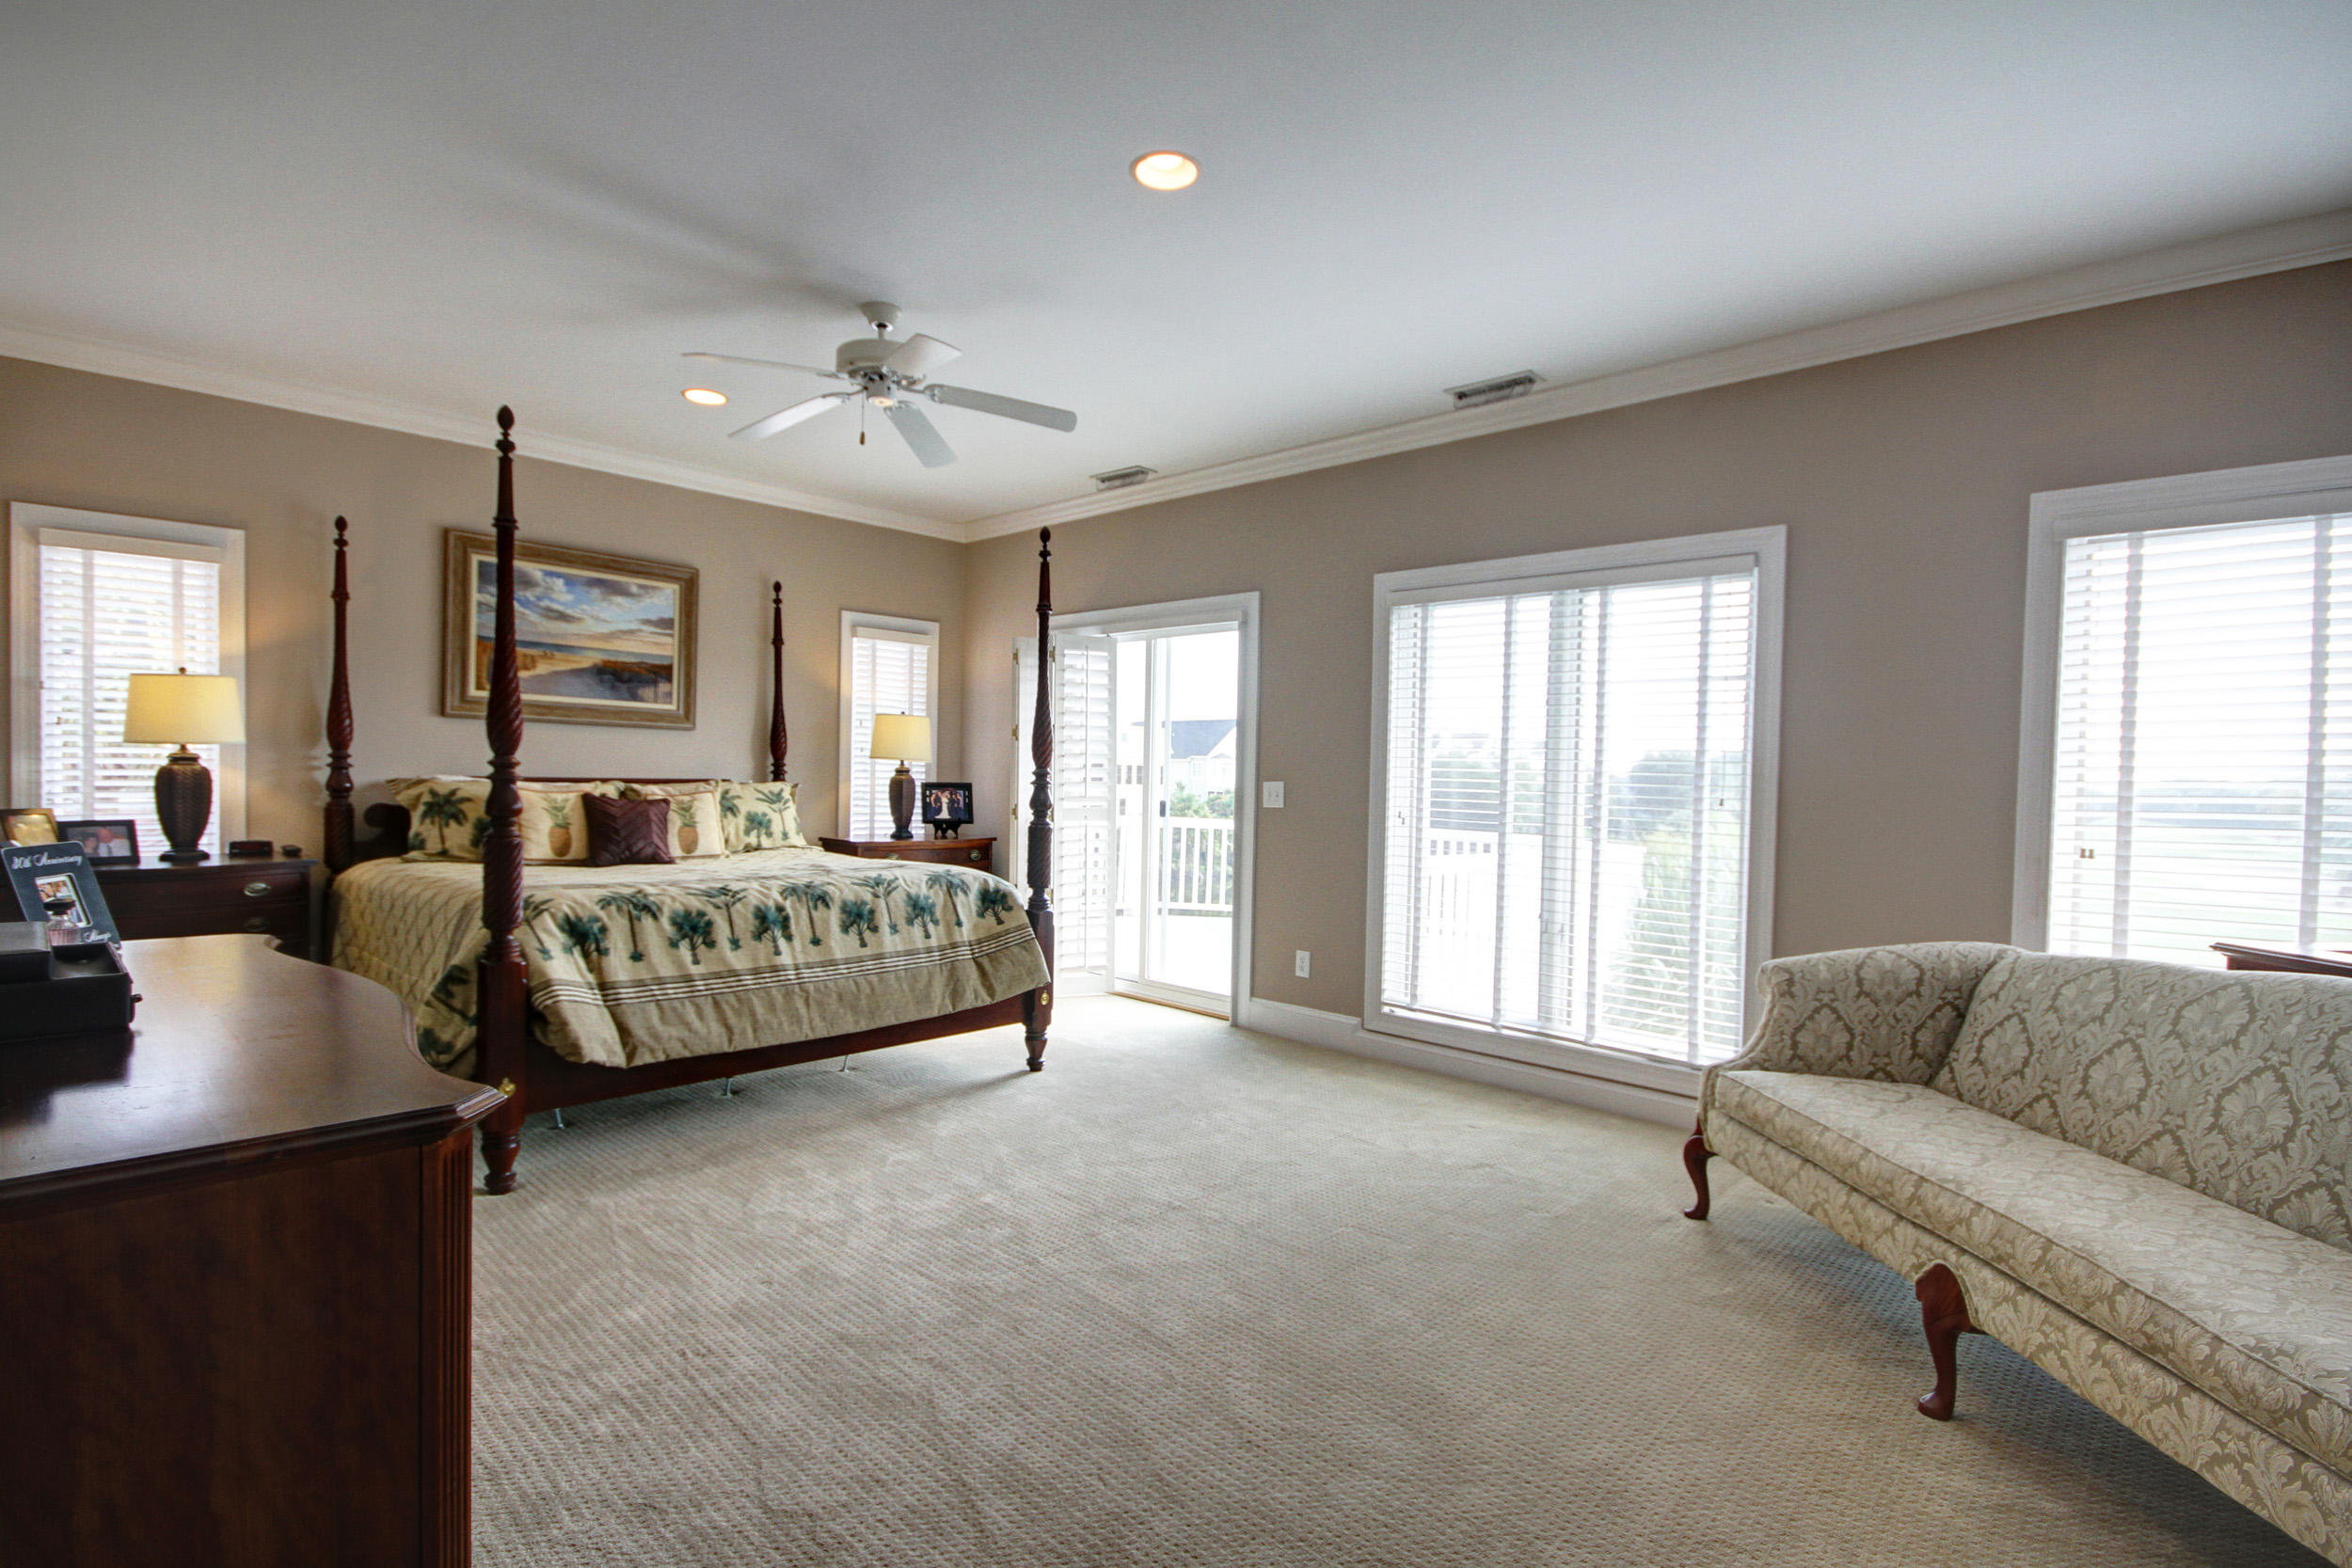 Wild Dunes Homes For Sale - 2 Morgan Pl, Isle of Palms, SC - 23